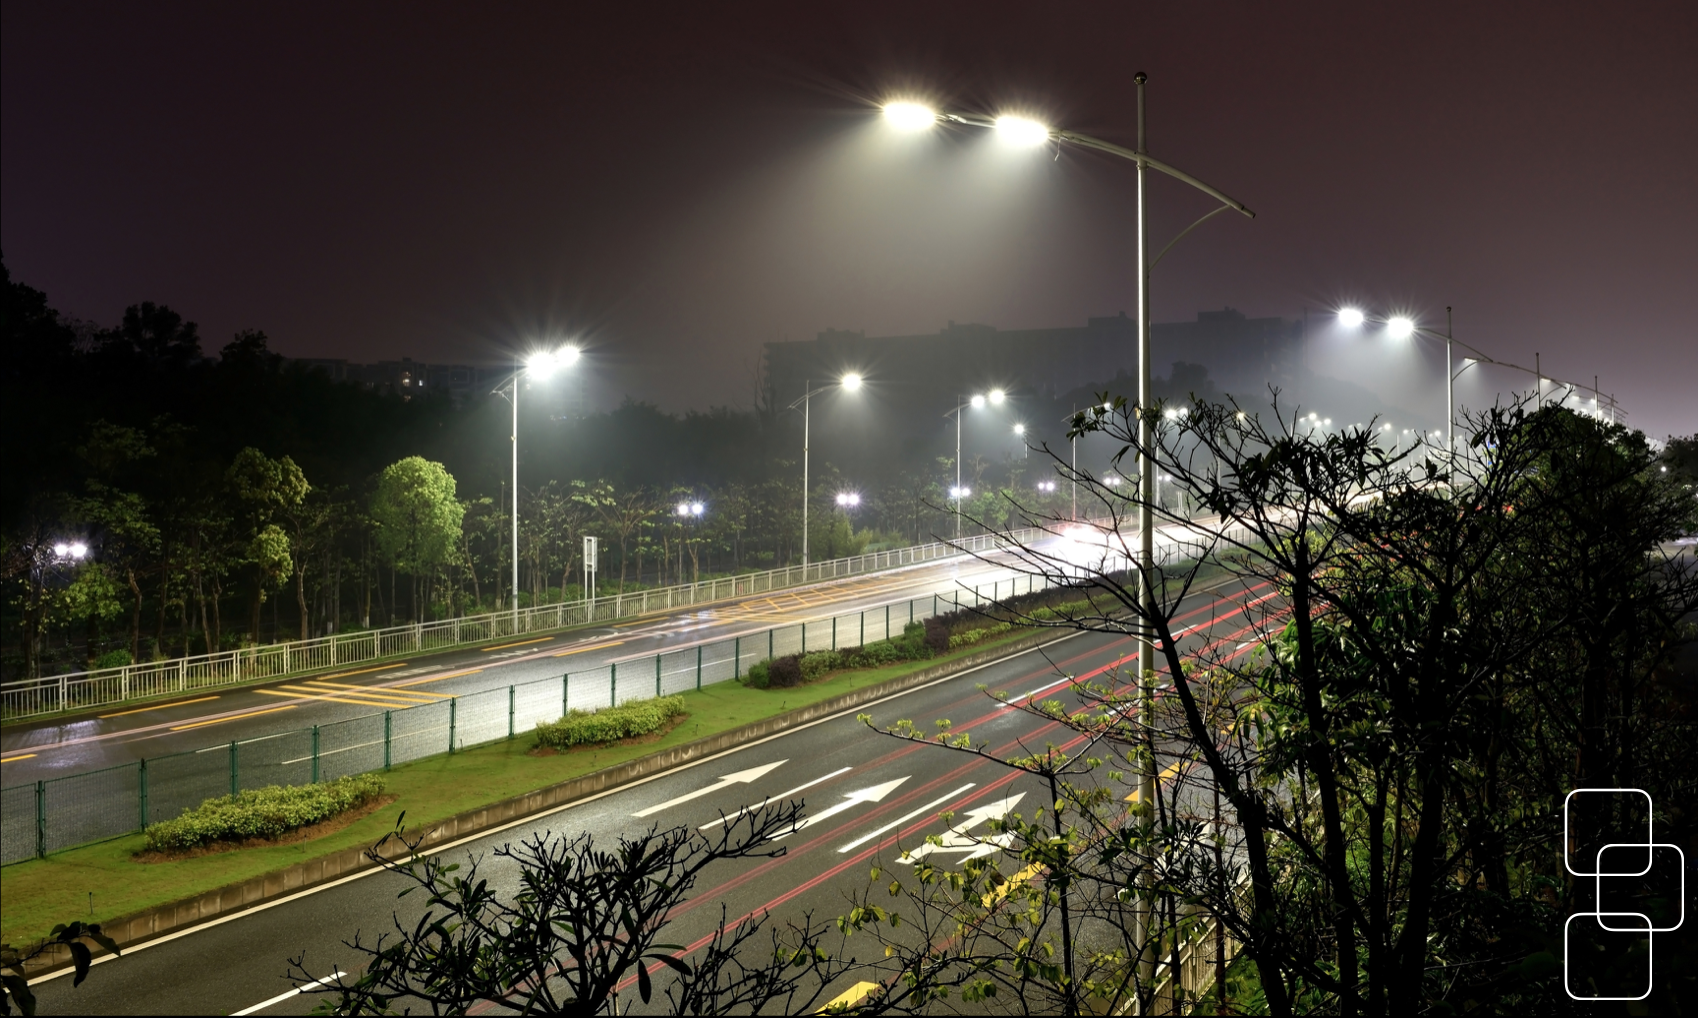 HIGH WAY STREET LIGHTS